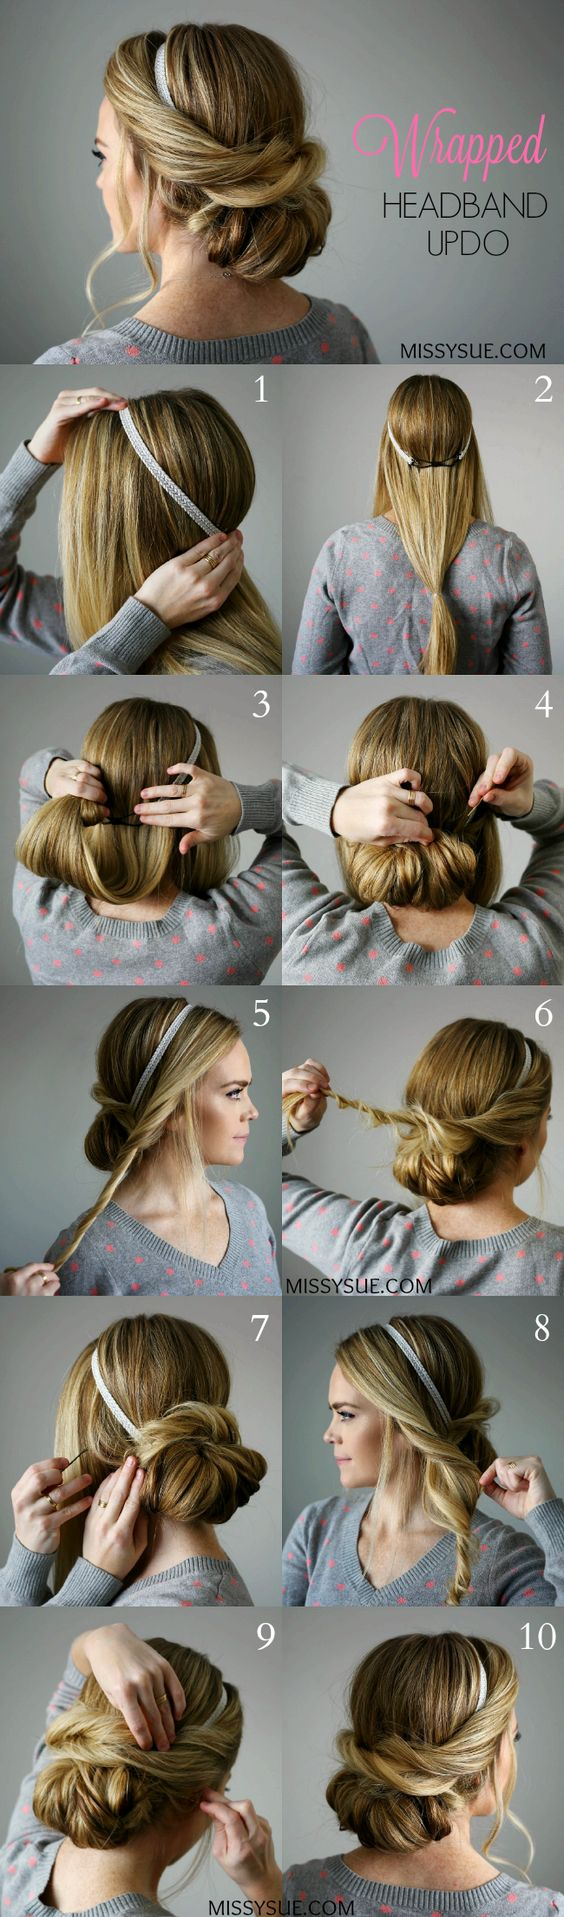 11 Easy Step by Step Updo Tutorials for Beginners - Hair ...